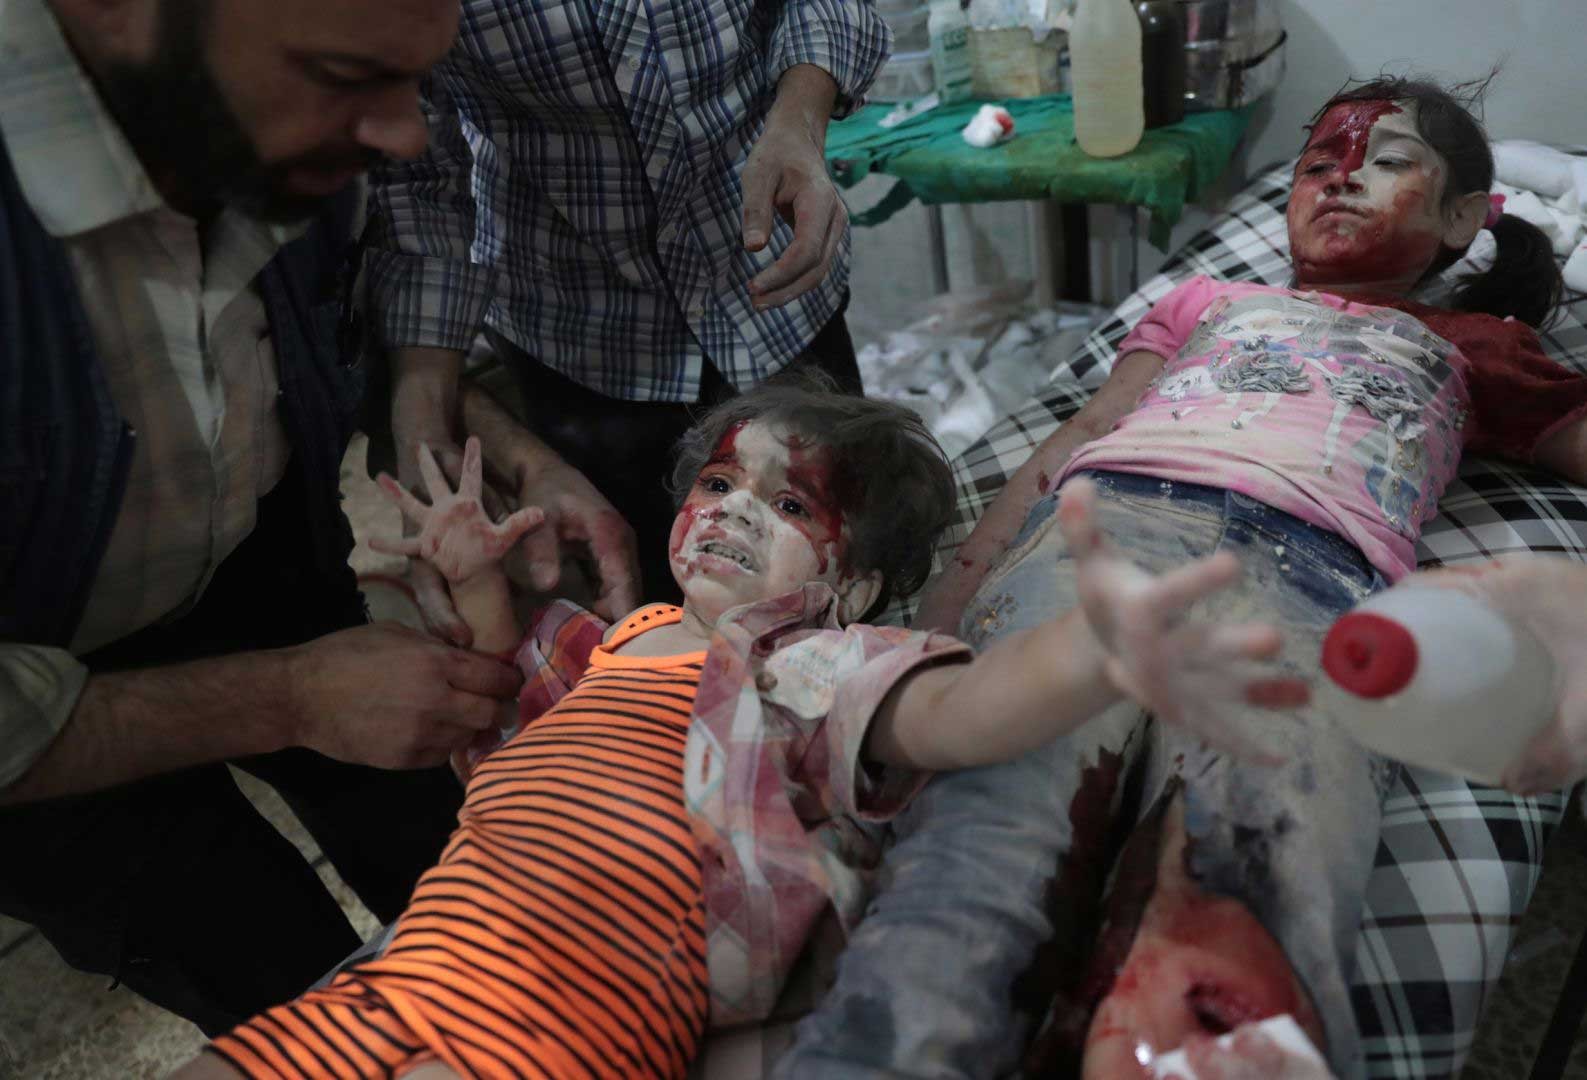 A Syrian girl cries out as a wounded child lies next to her at a makeshift hospital on Sept. 12, 2016. She had been injured in reported government airstrikes on the rebel-held town of Douma, east of Damascus, Syria.